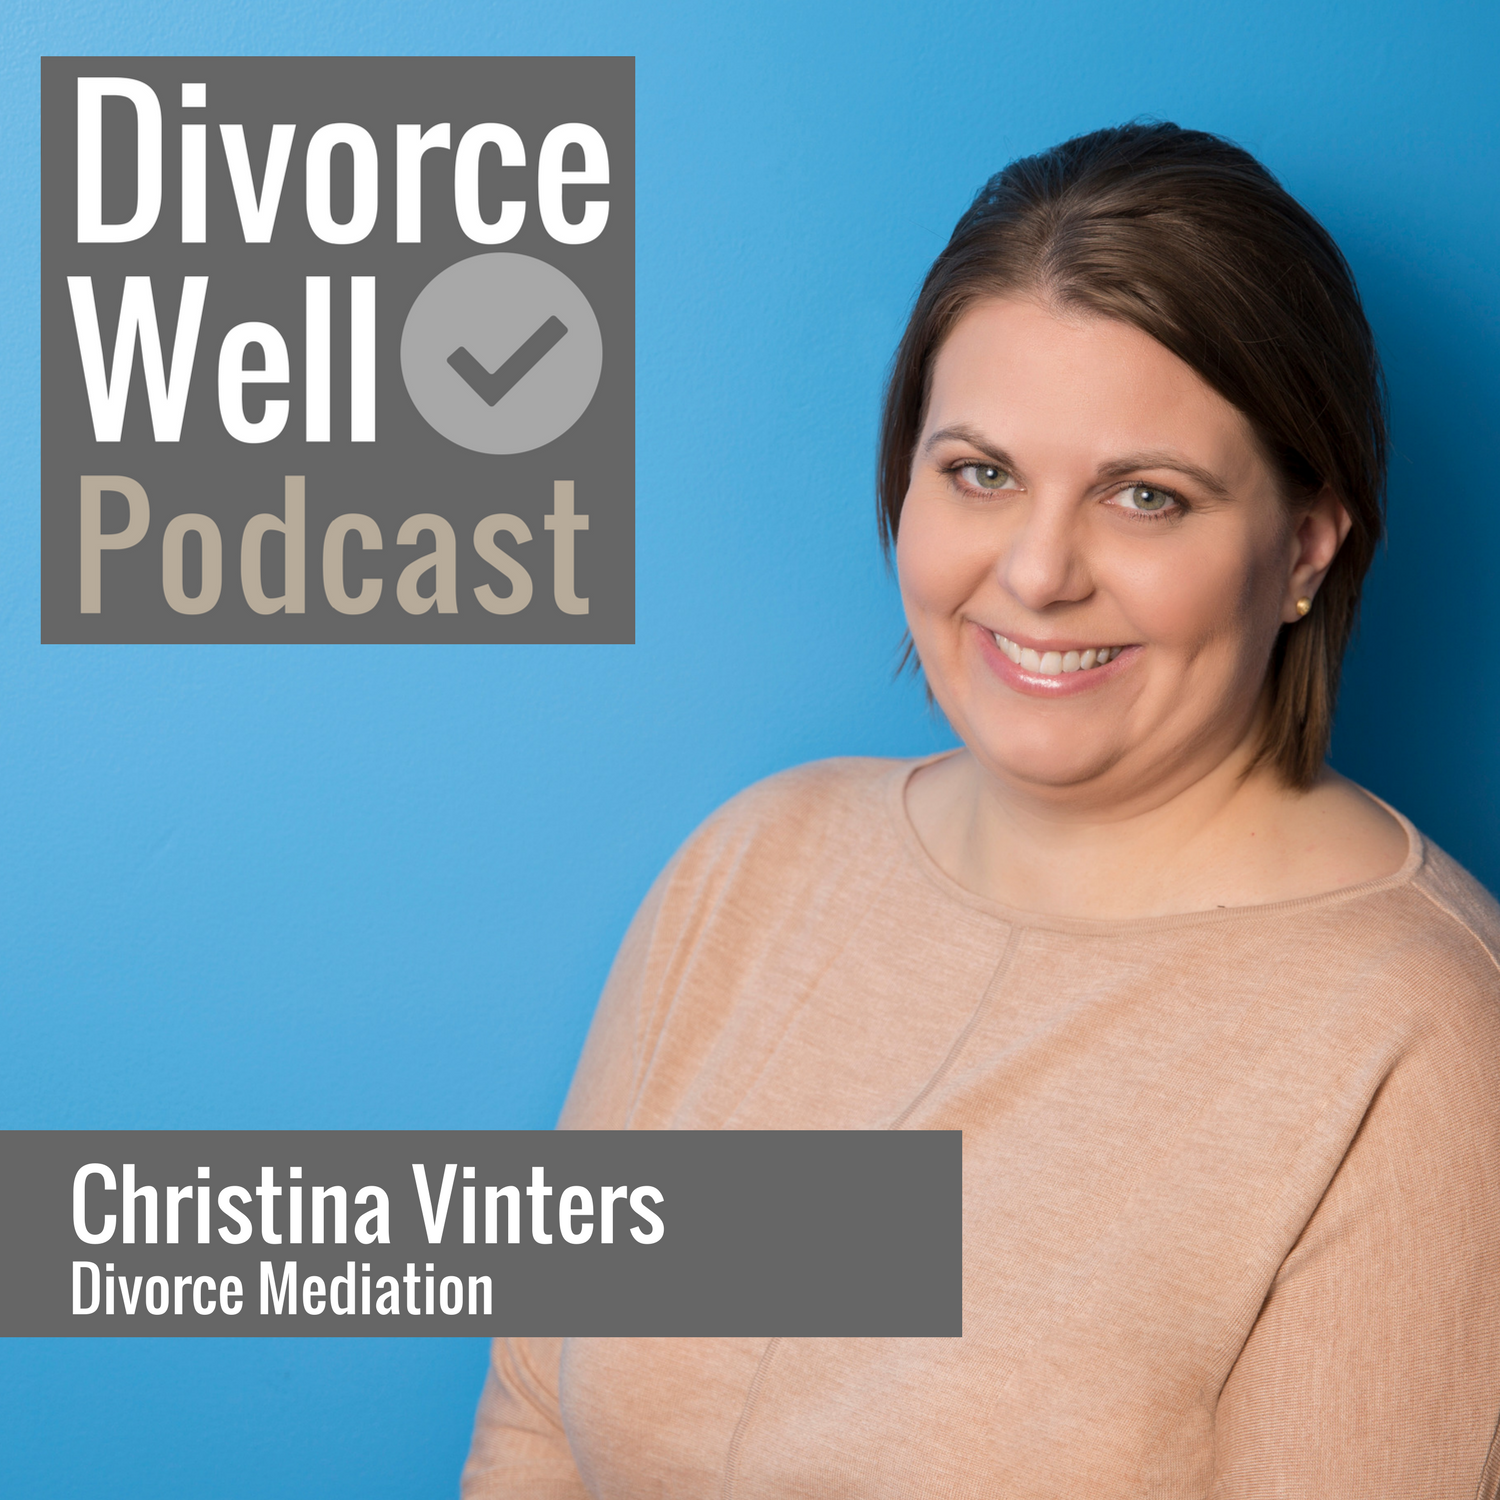 The Divorce Well Podcast - 09 - Divorce Mediation, with Christina Vinters